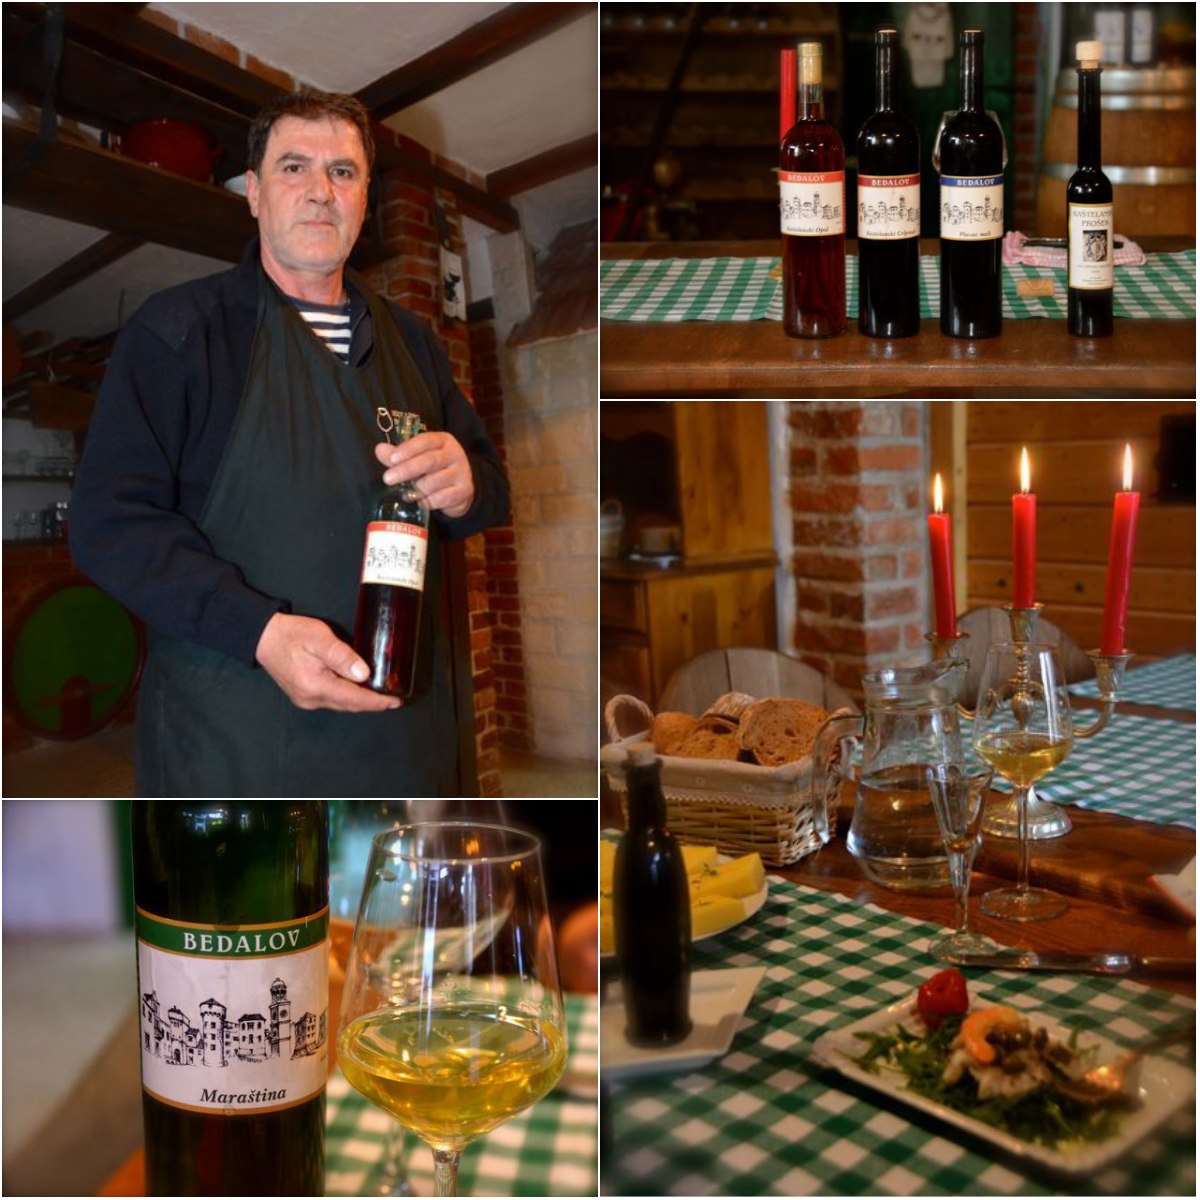 collage of pictures: man holding wine bottle, plates of food and wine bottles on table with candles